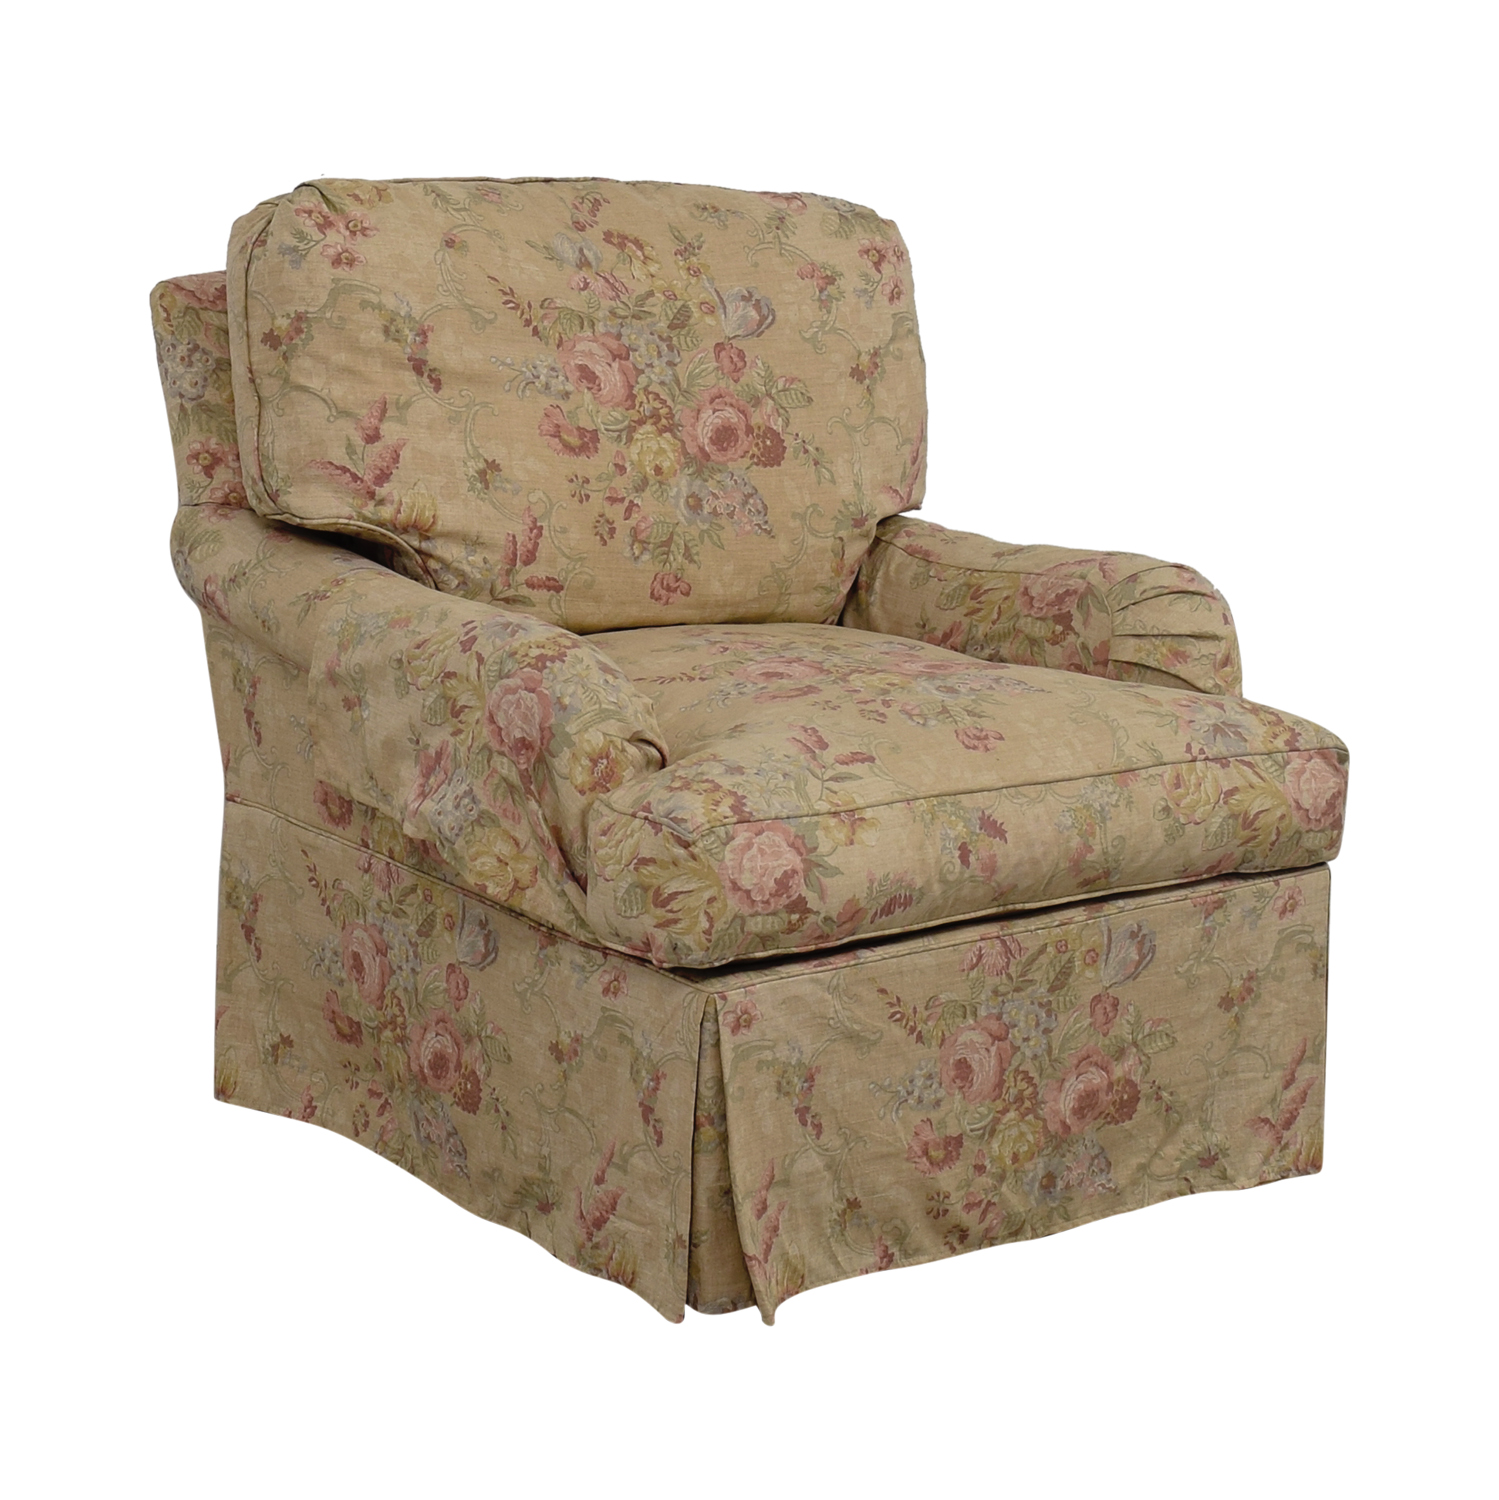 Beige And Green Floral Accent Chair: Domain Domain Beige And Pink Floral Accent Chair